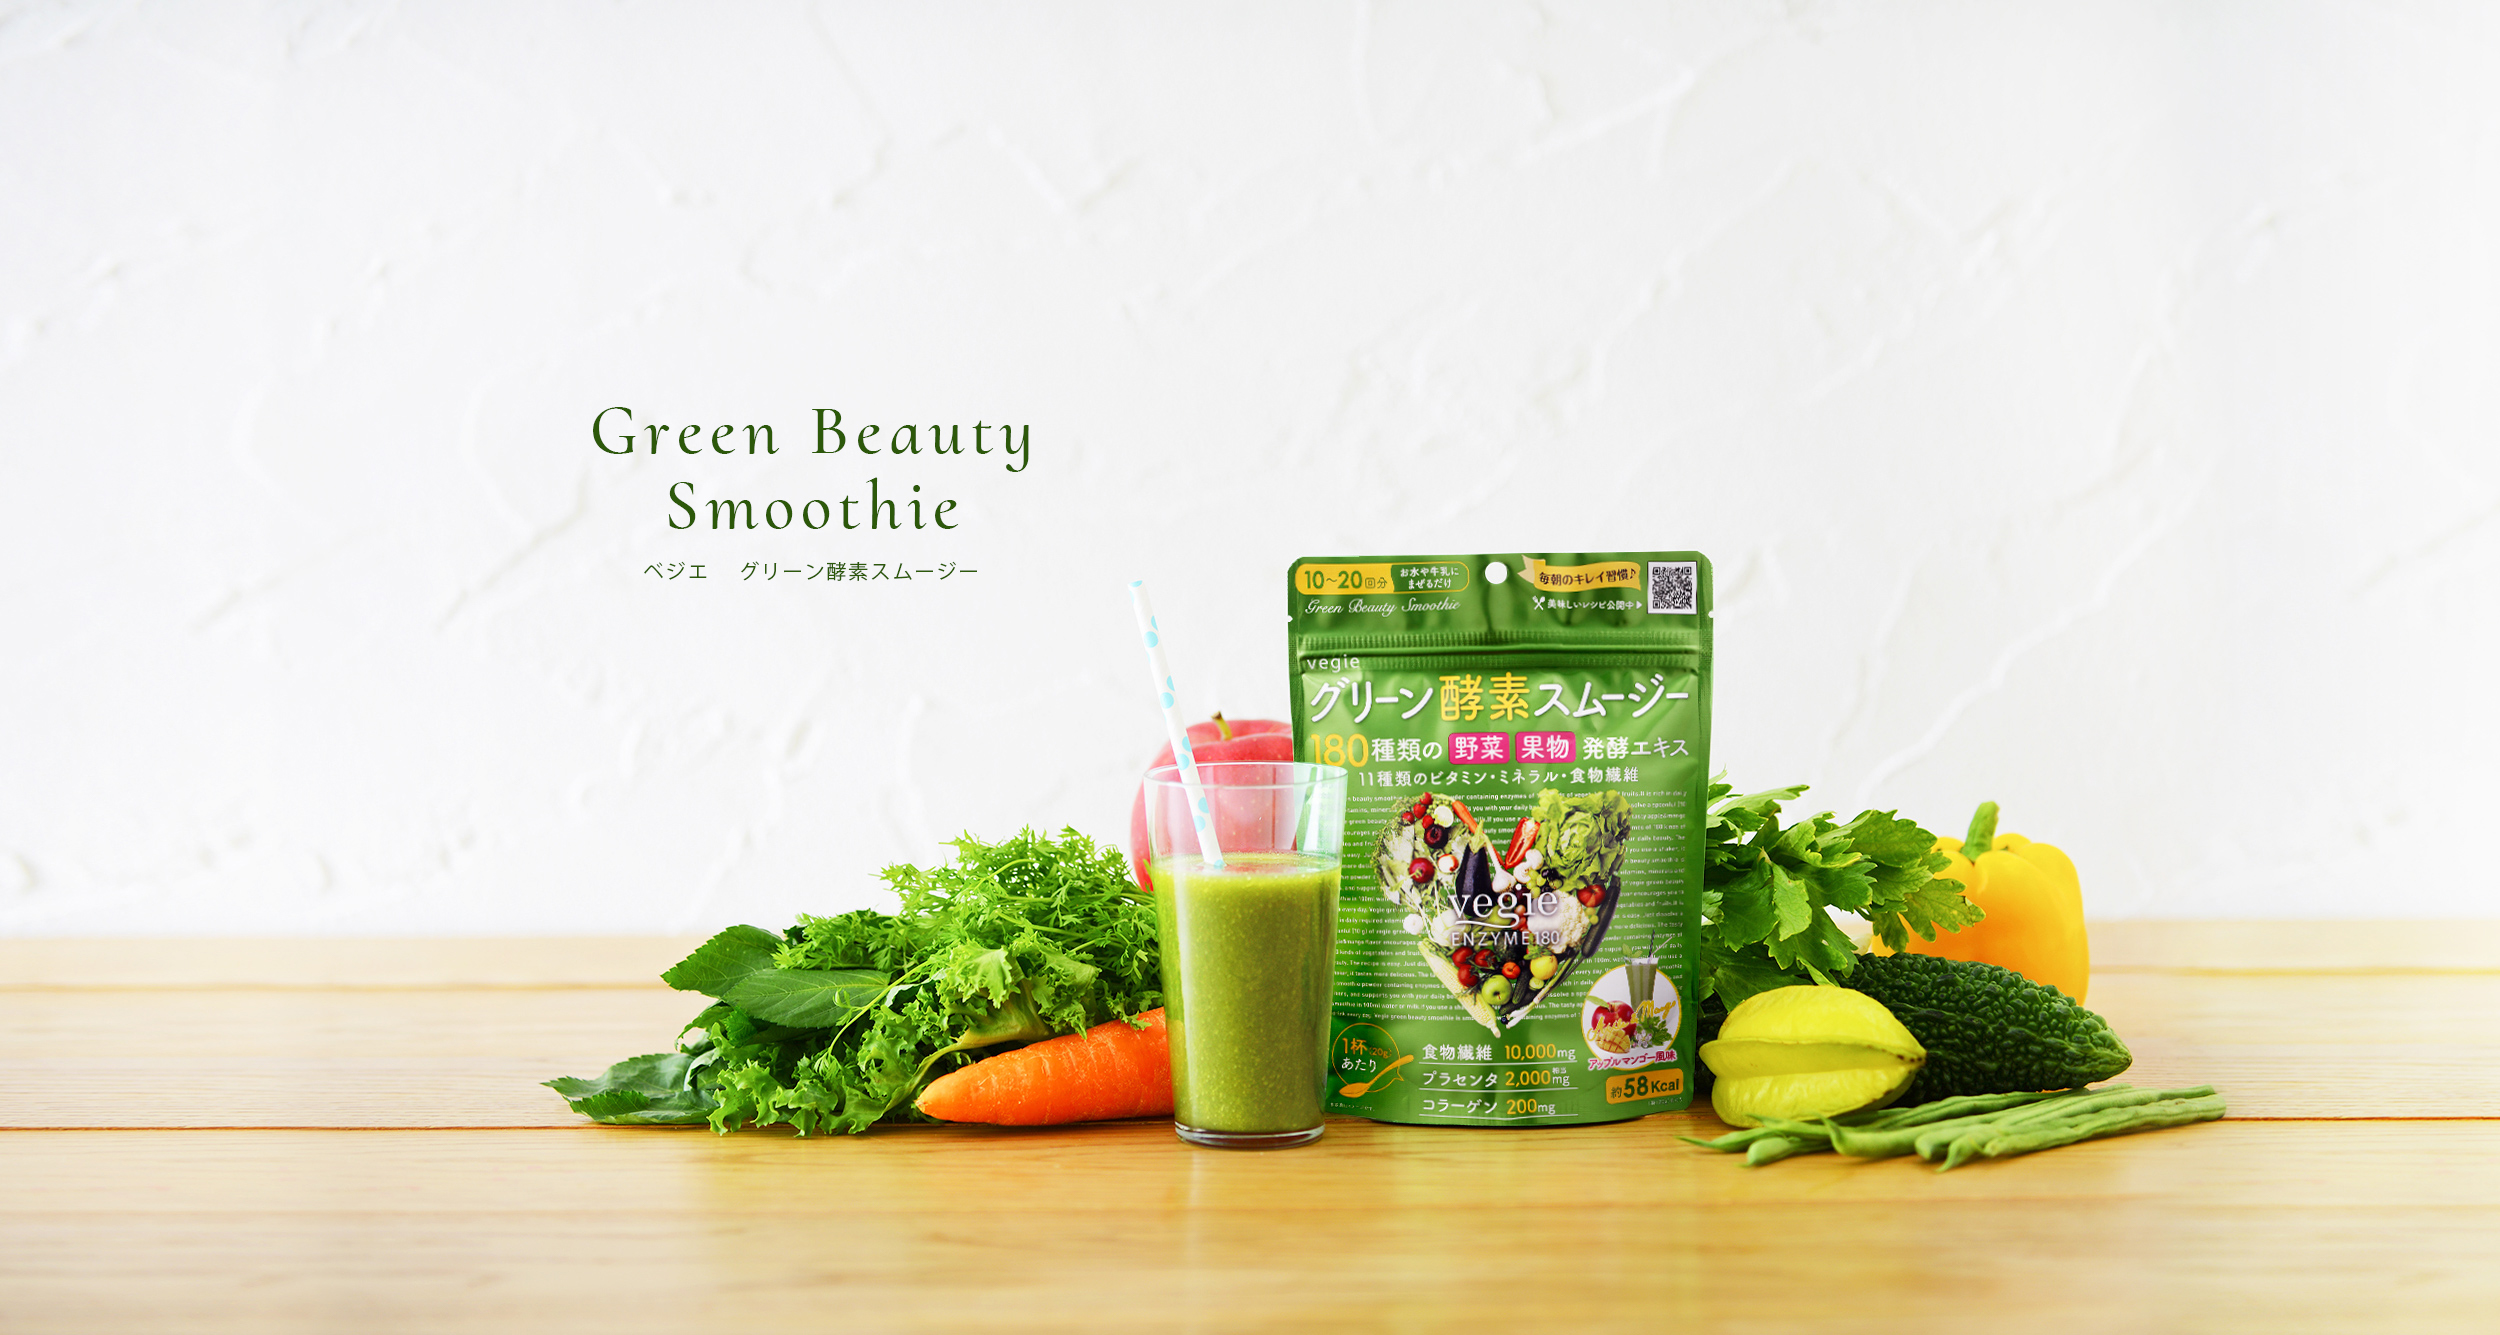 Green Beauty Smoothie ベジエ グリーン酵素スムージー